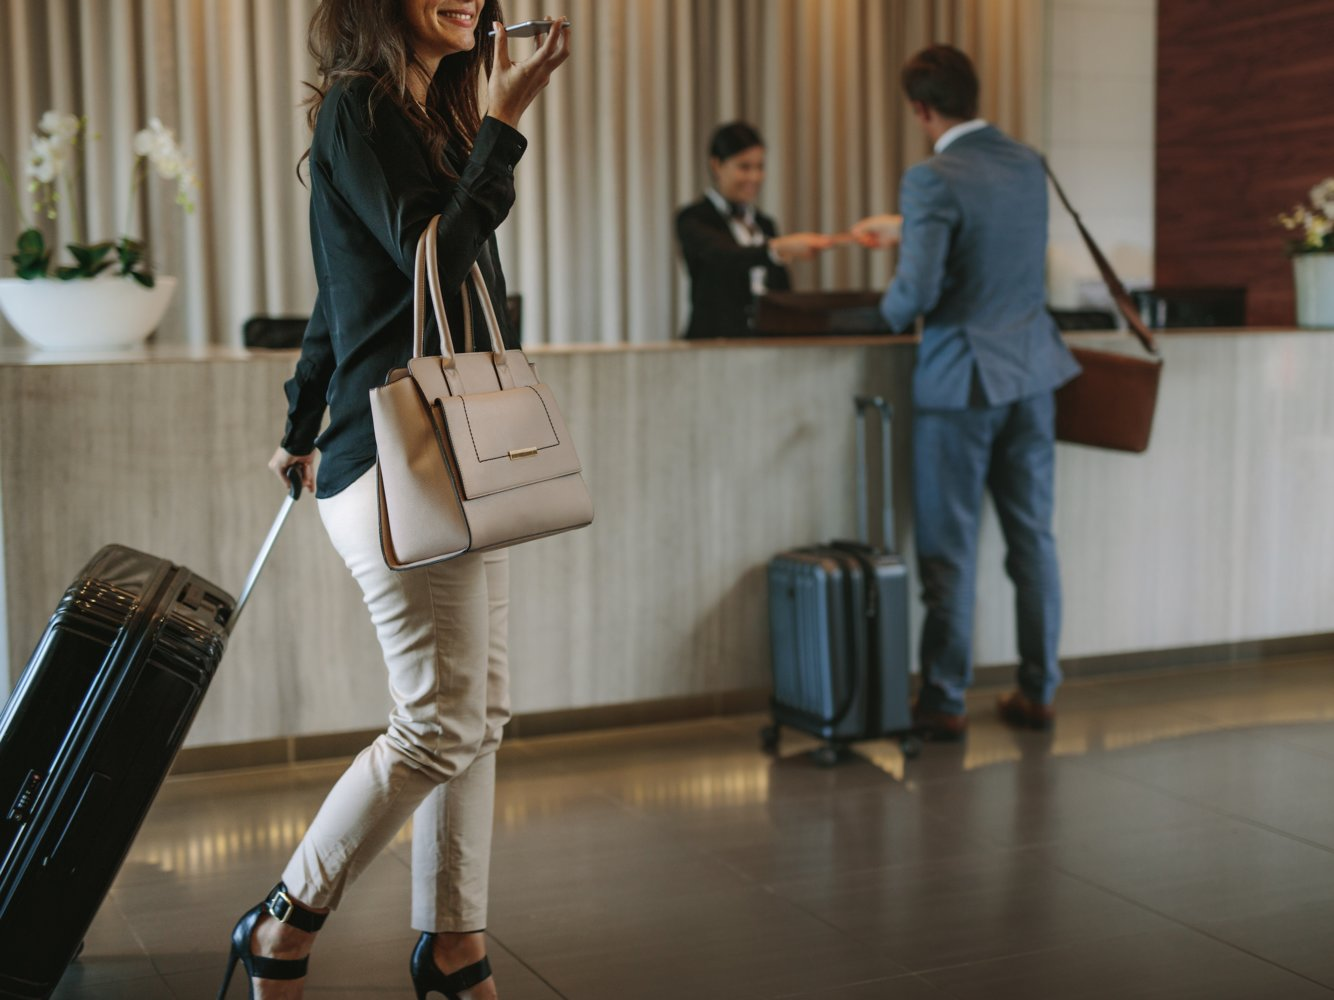 The 10 items you don't actually need to pack for business travel